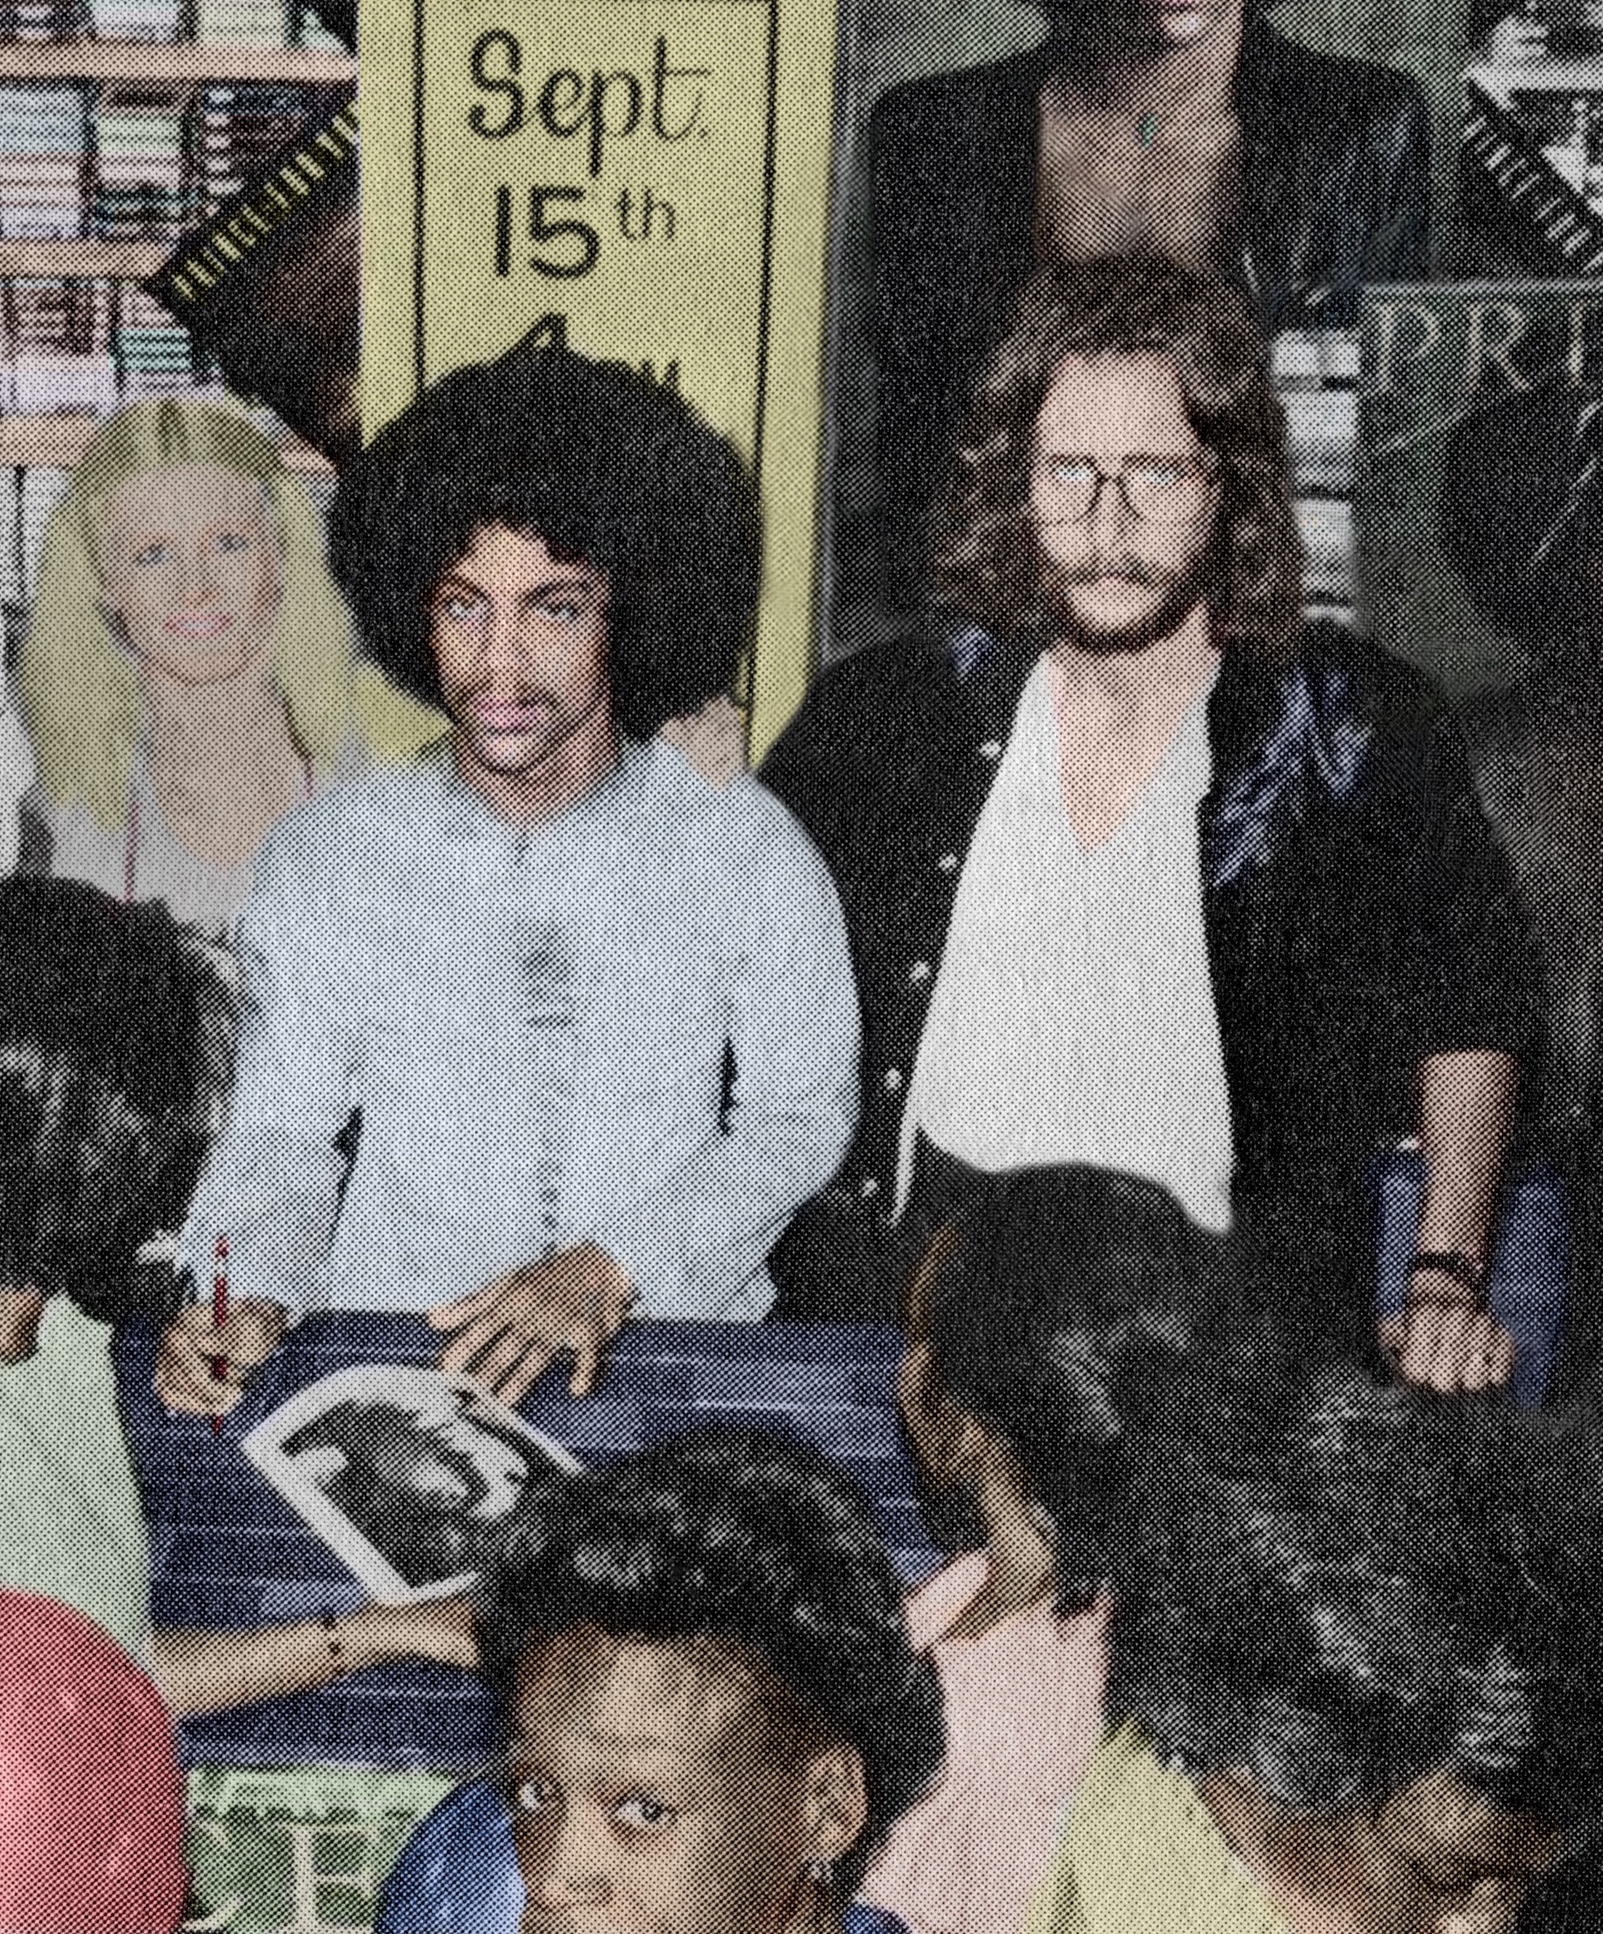 Caption: Prince and Owen Husney at a record store signing, circa 1978., Credit: Owen Husney